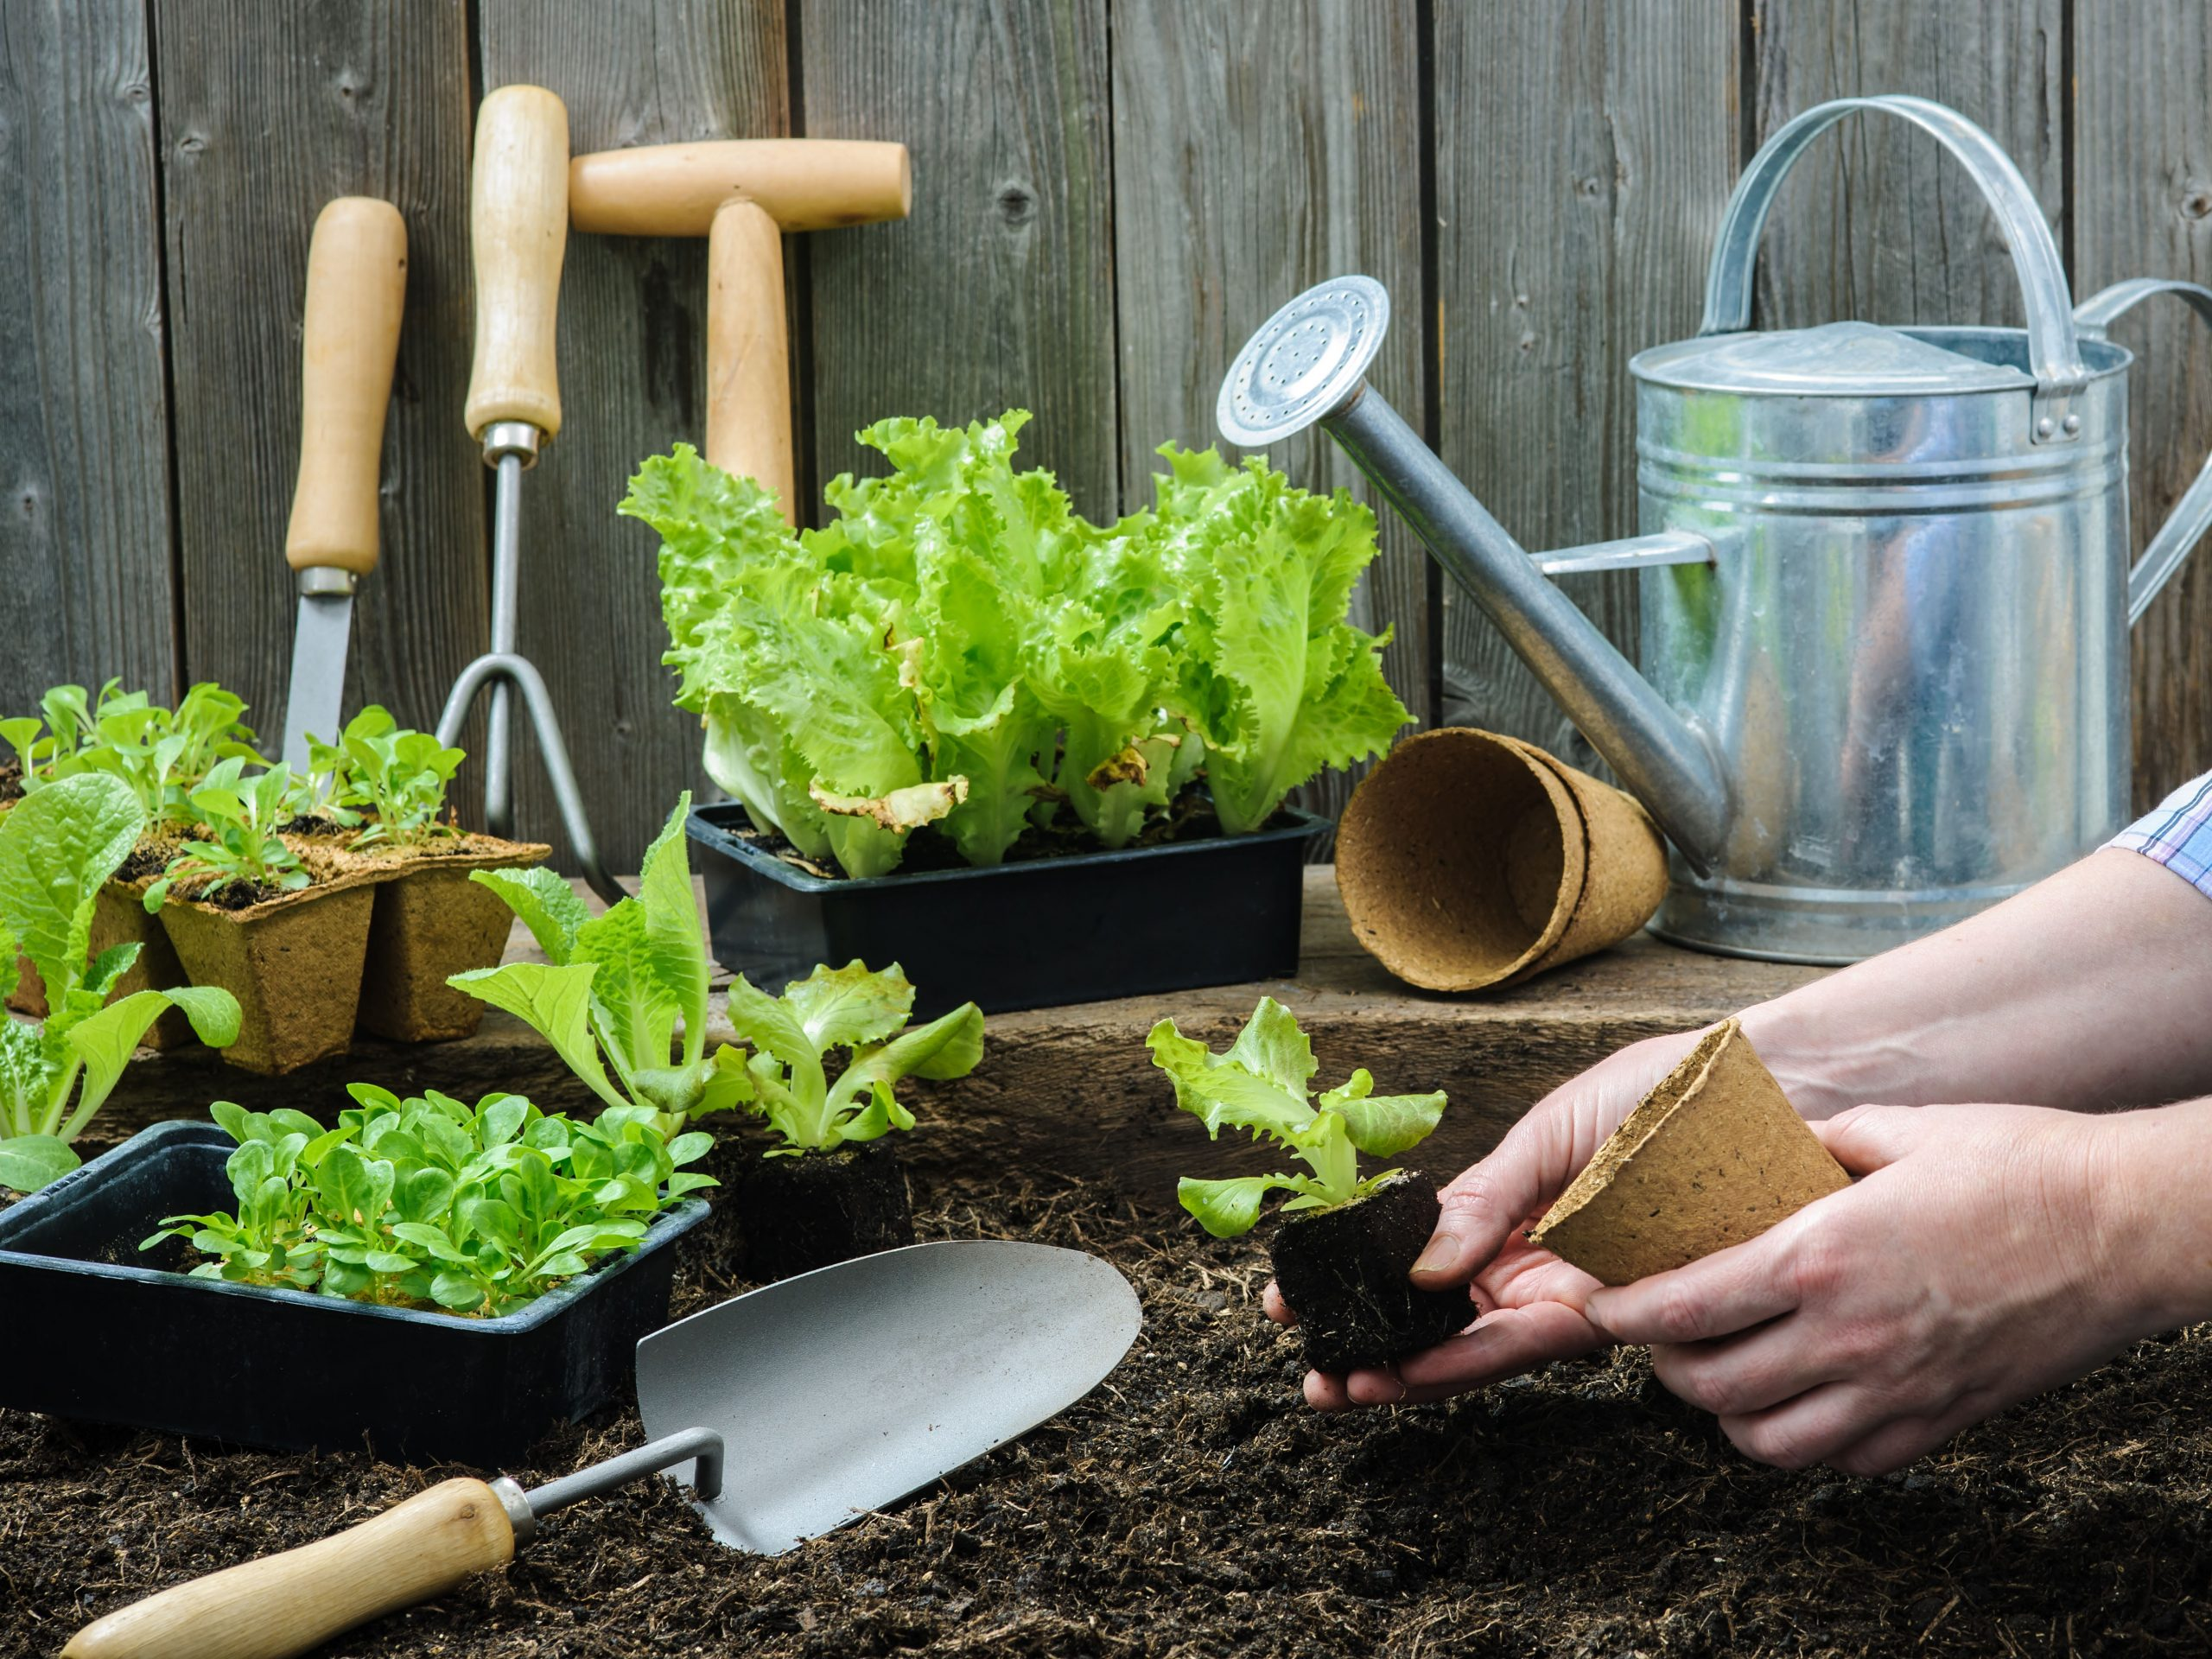 Plant Your Own Sustainable Vegetable Garden